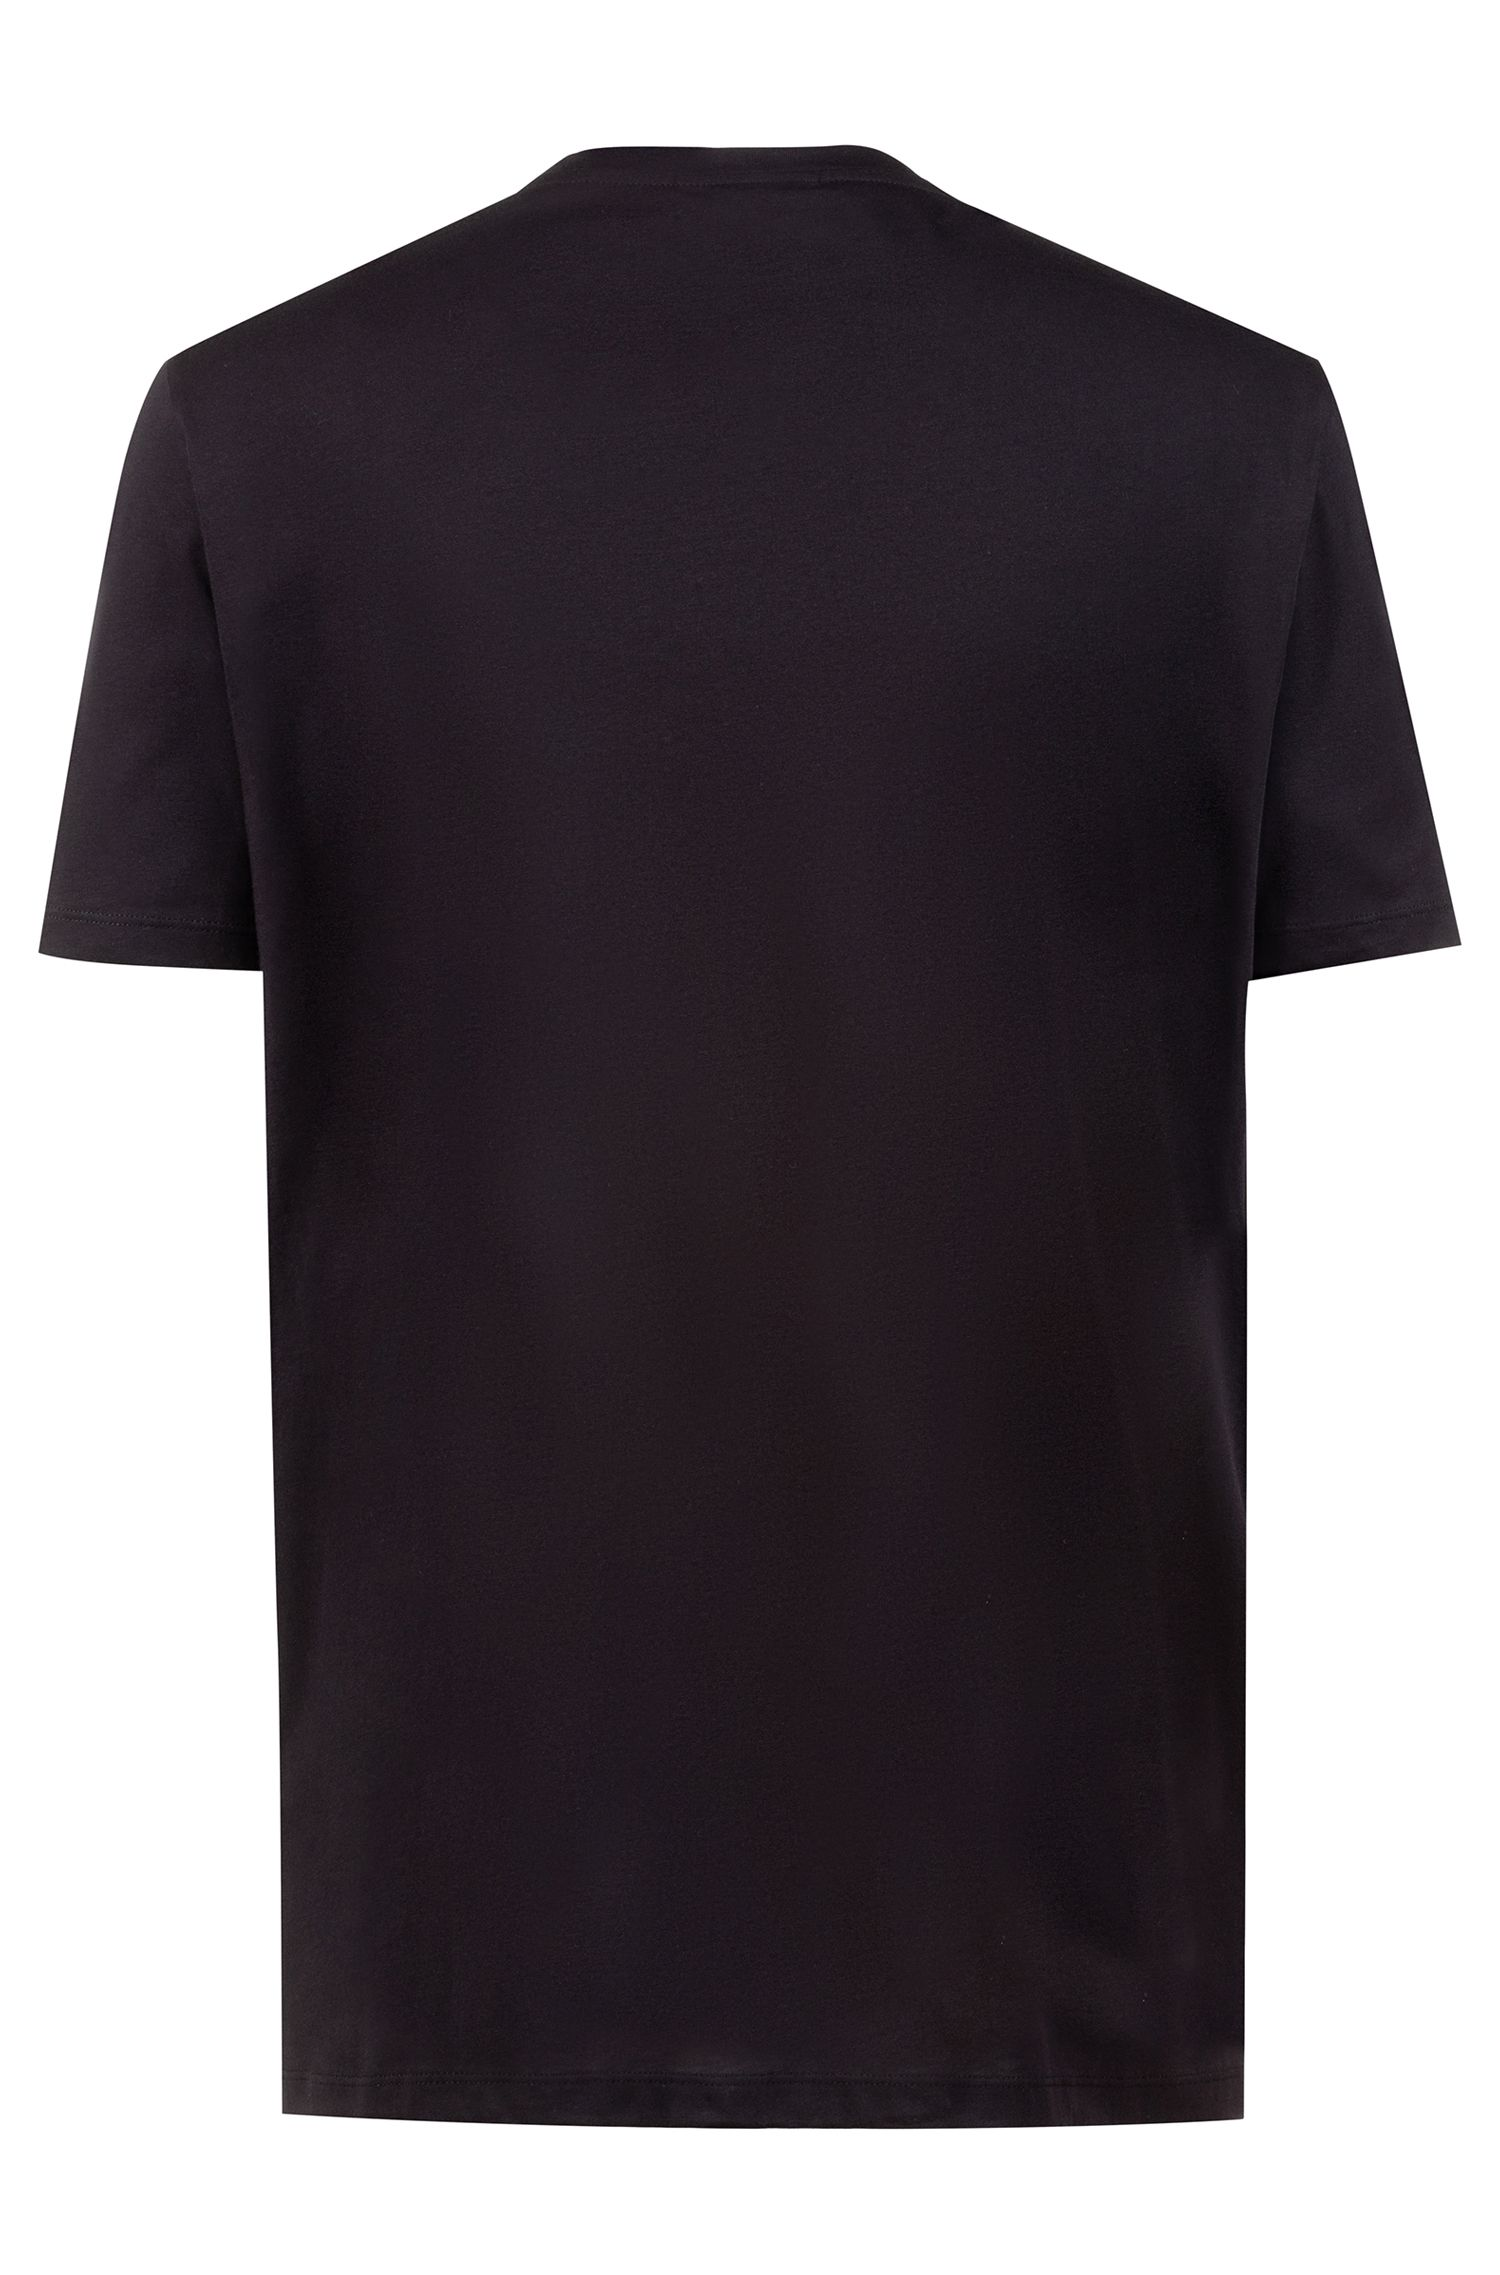 Relaxed-fit T-shirt with graphic logo-interpretation print, Black